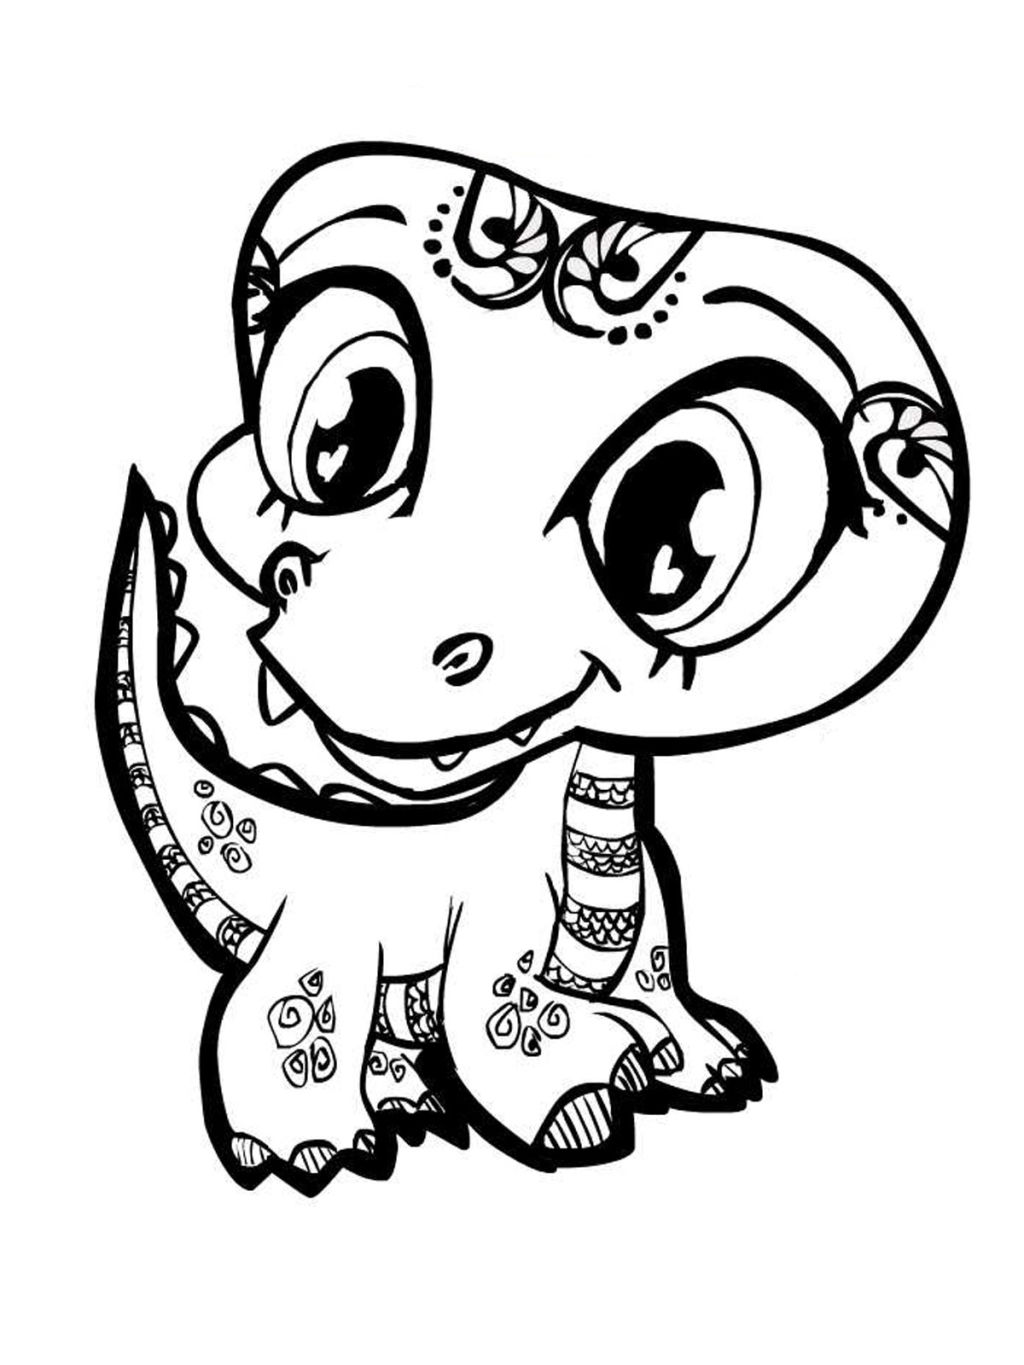 coloring cute animals 25 cute baby animal coloring pages ideas we need fun animals cute coloring